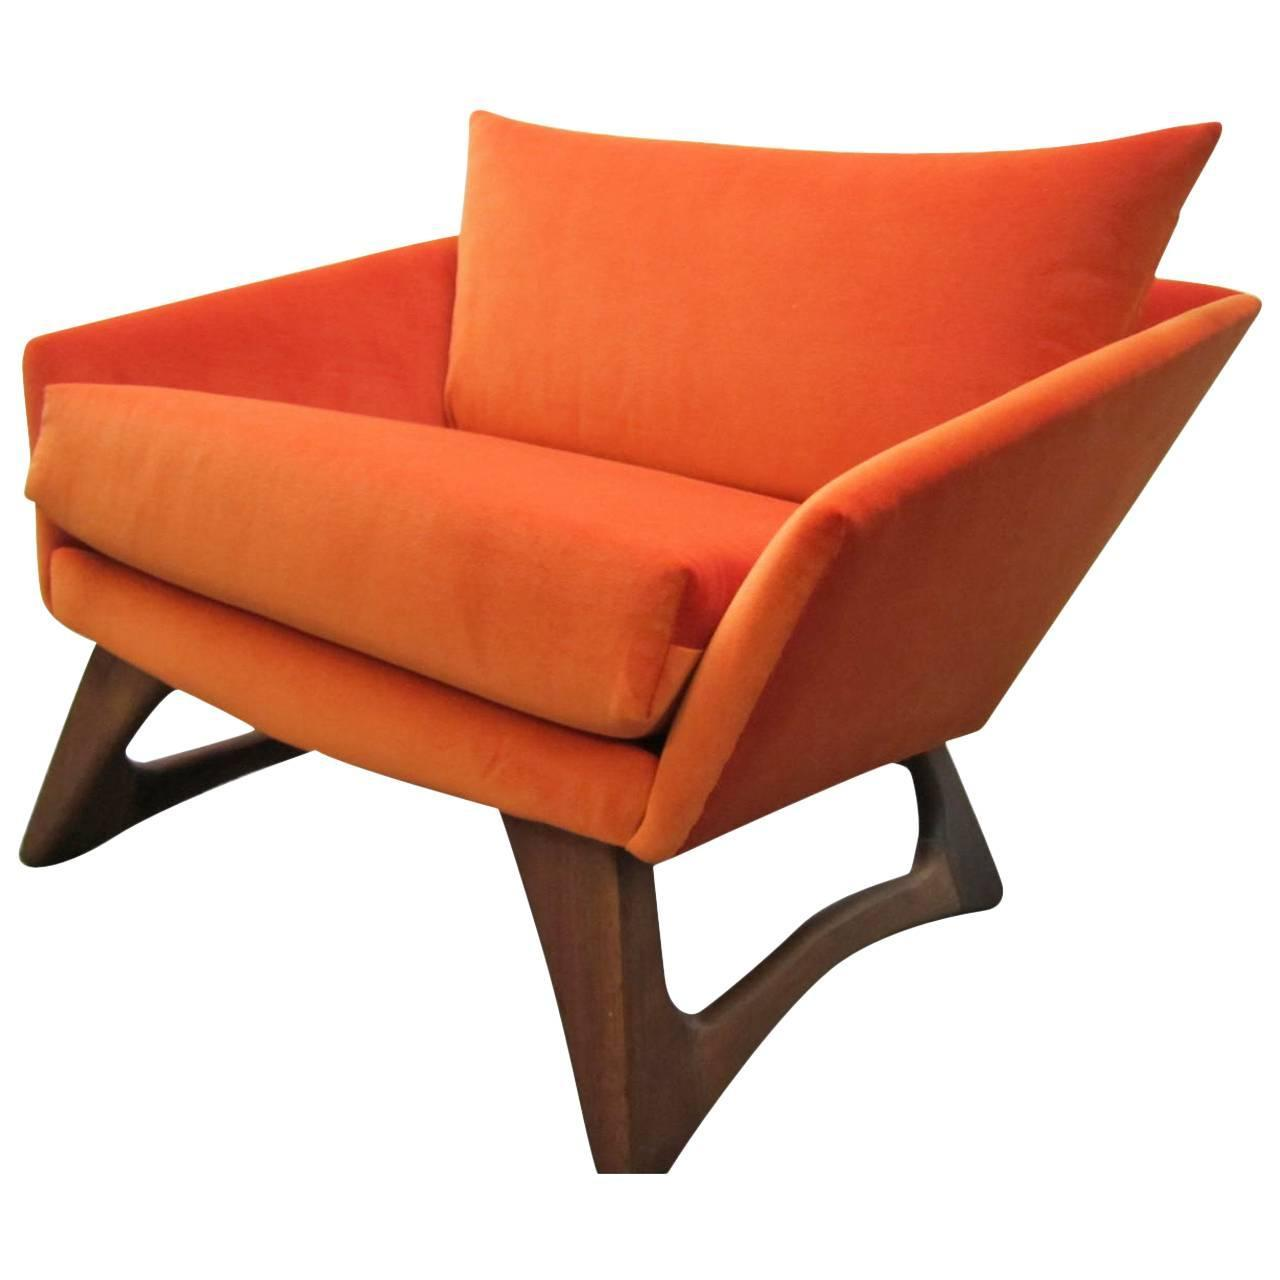 Scrumptious adrian pearsall angular sculptural walnut lounge chair mid century for sale at 1stdibs